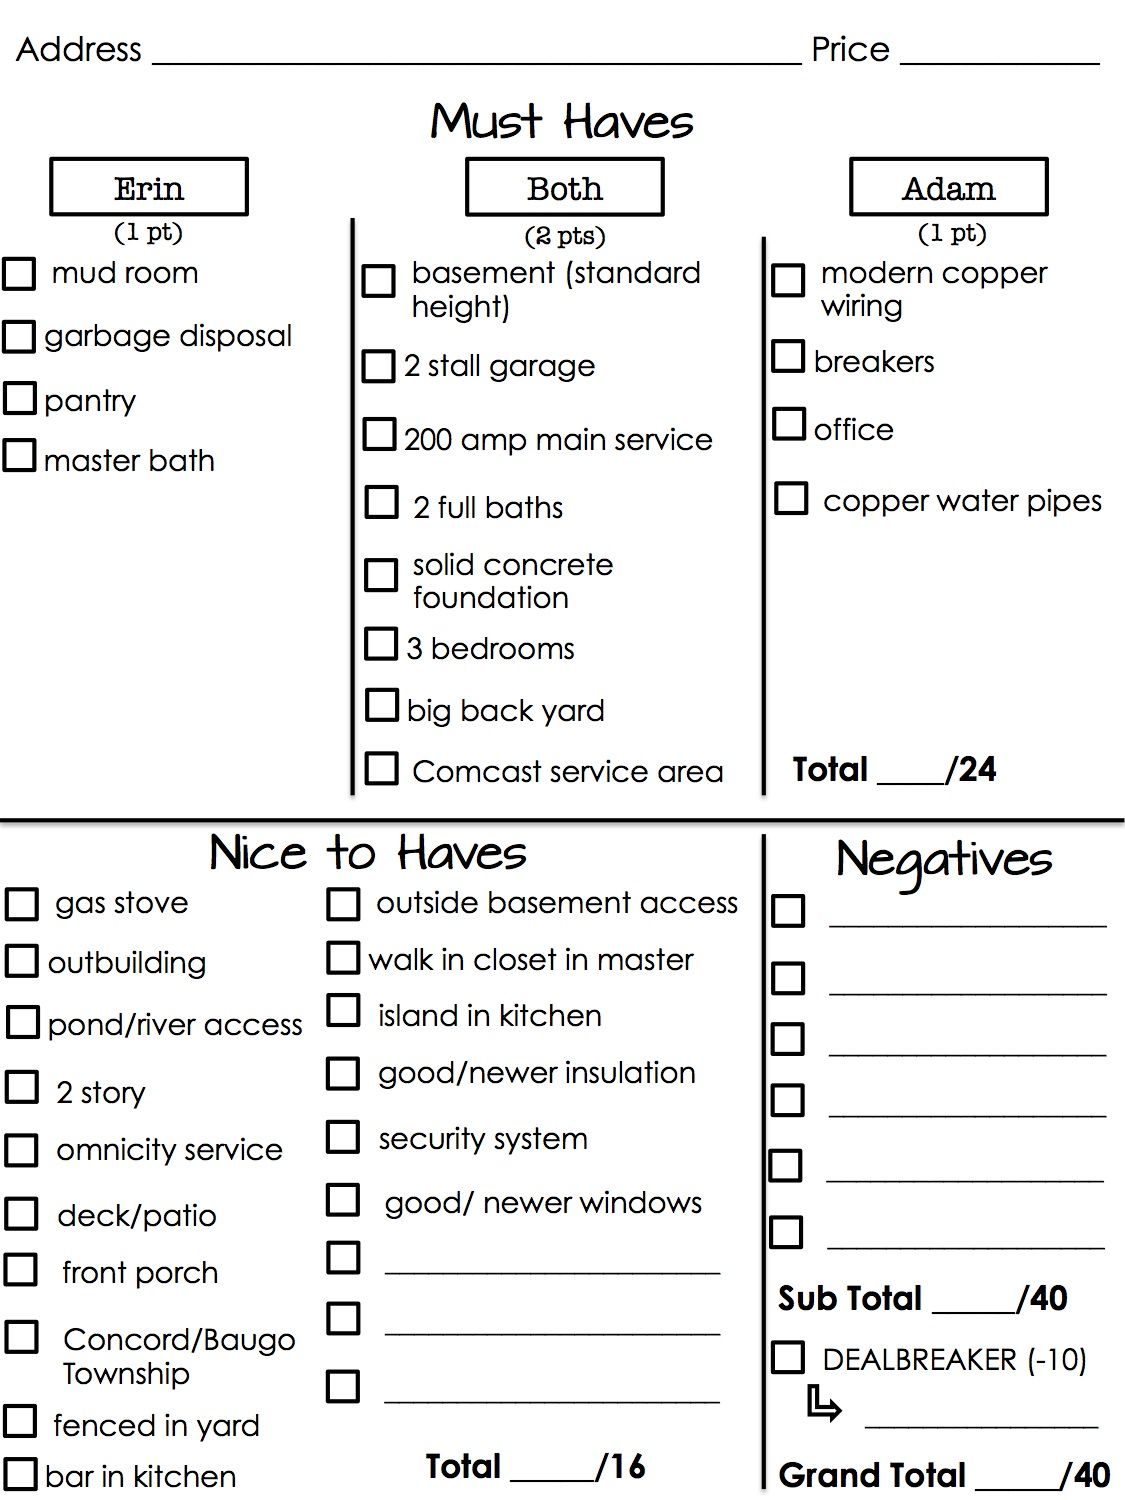 House Hunting Score Sheet So Genius For Anyone Looking For Their Next Great Place